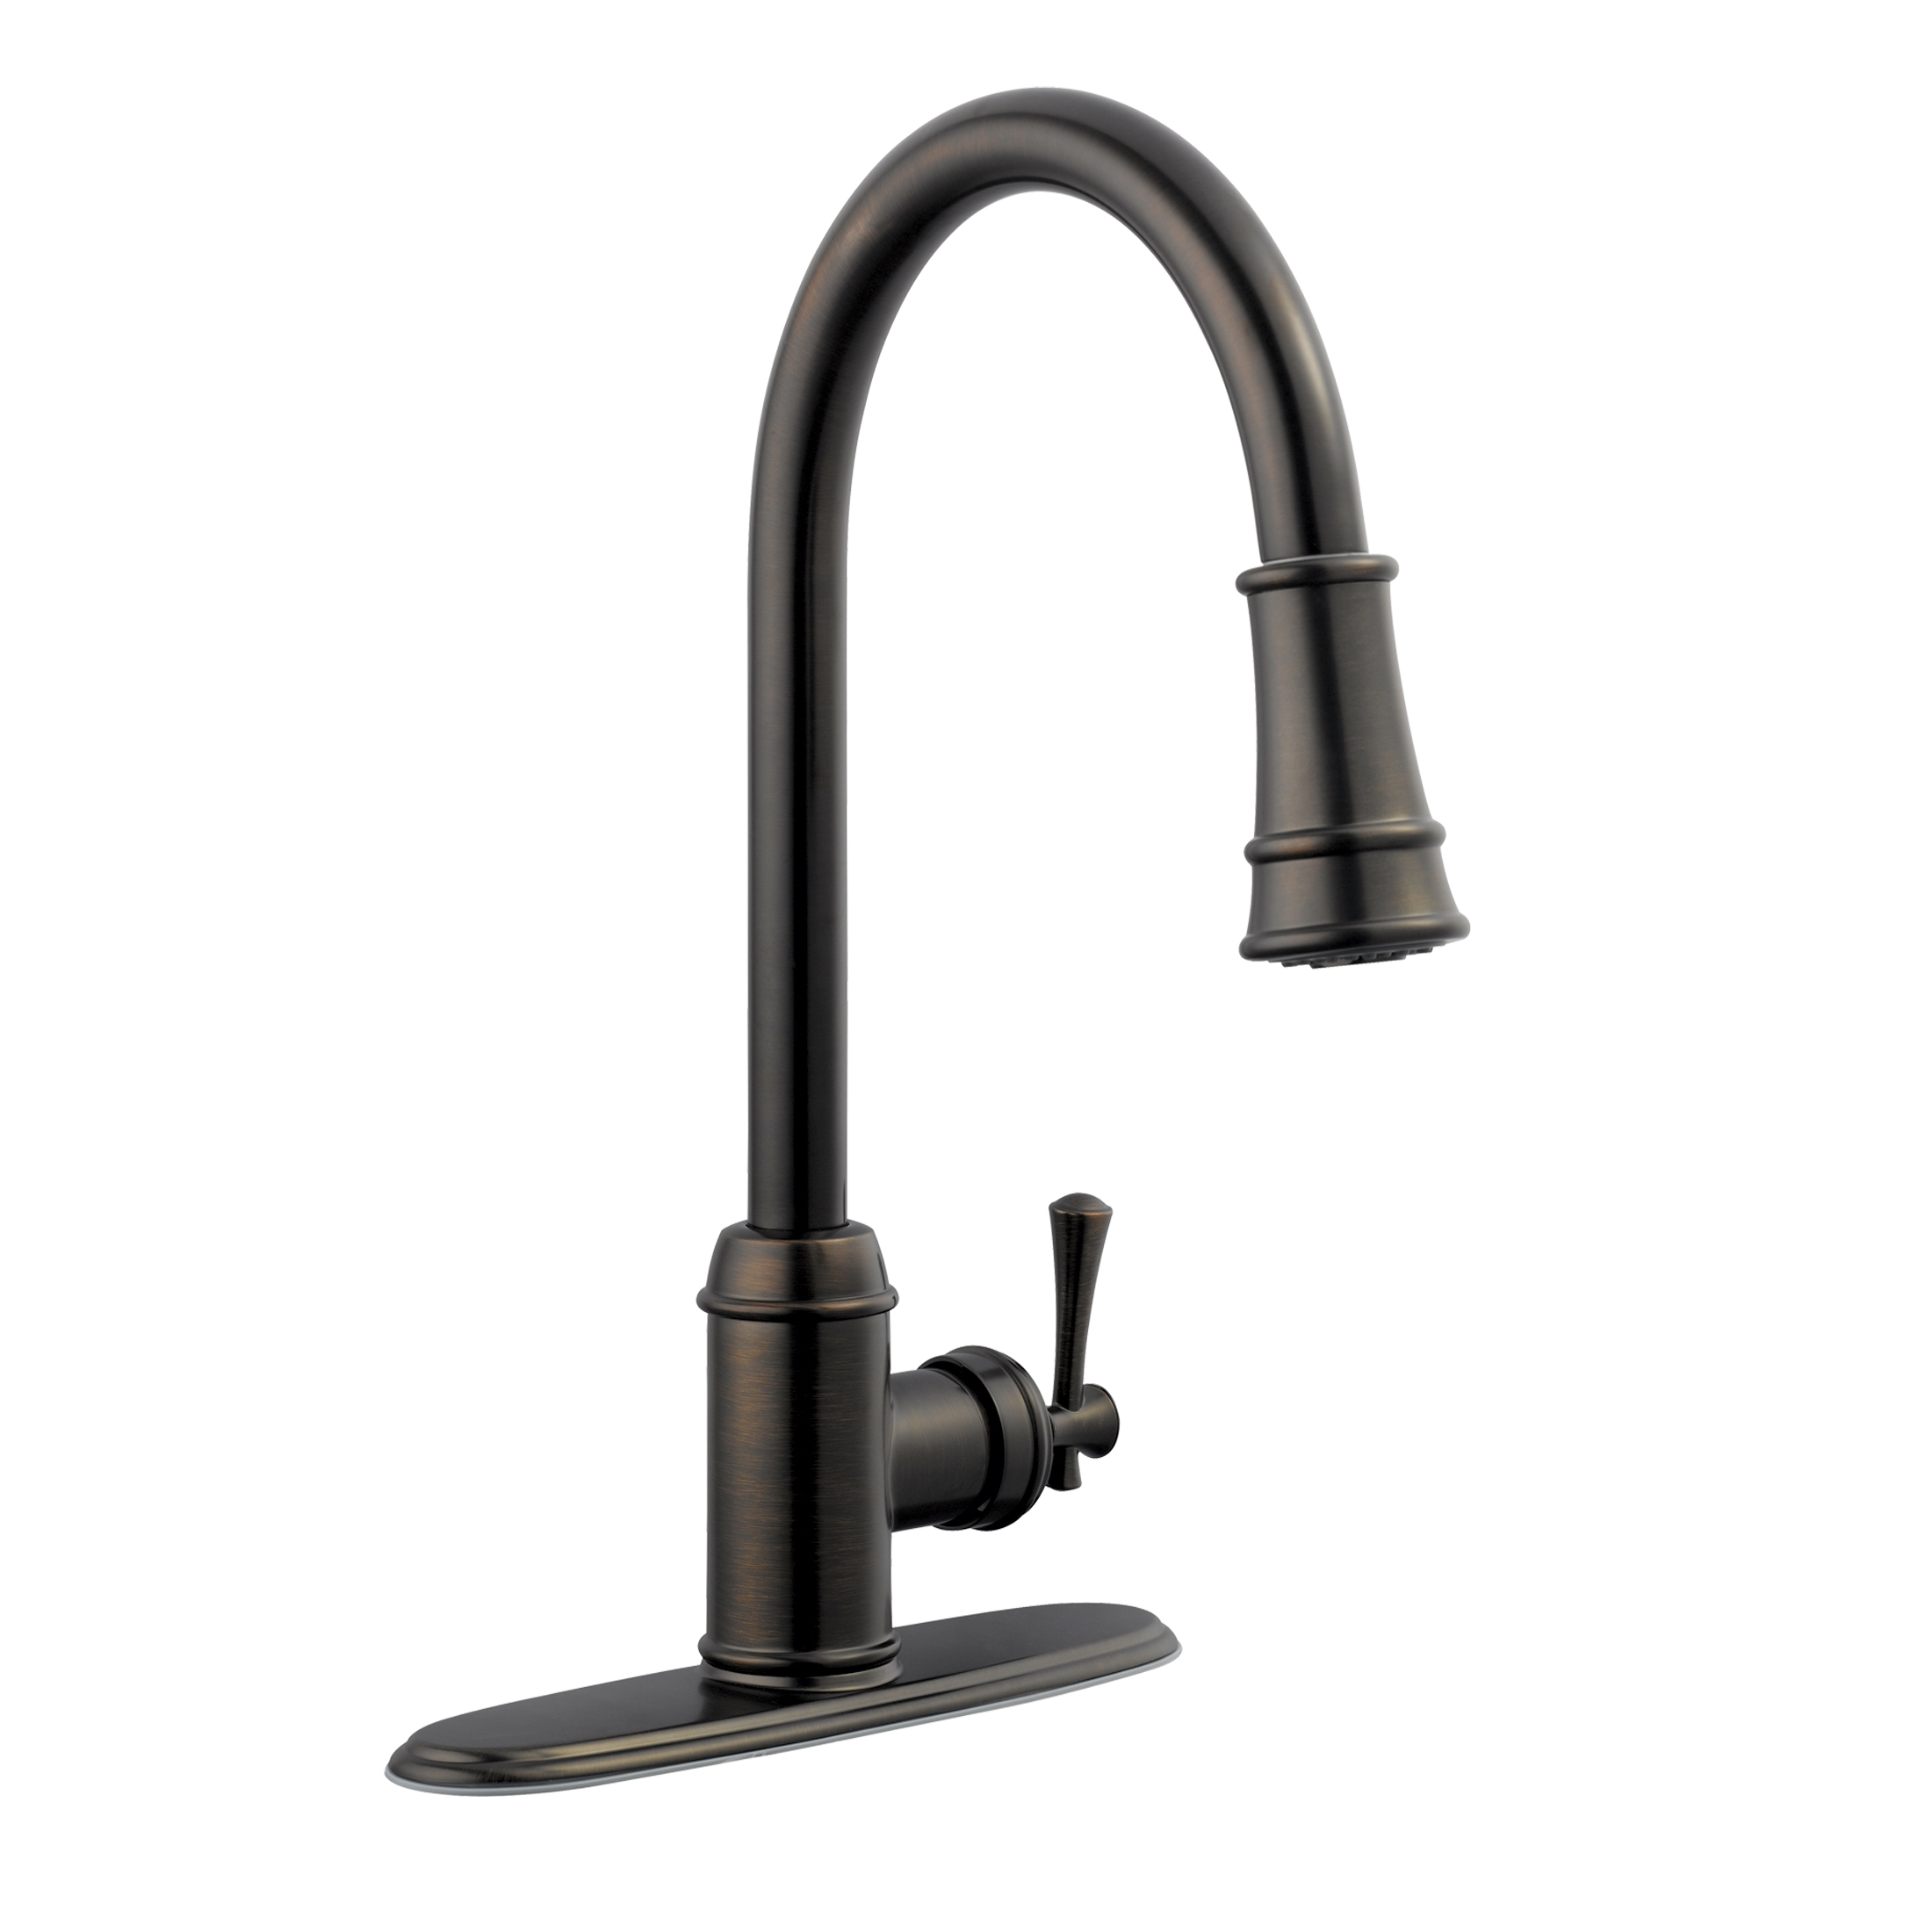 design house kitchen faucets.  Ironwood Pullout Kitchen Faucet 524728 Plumbing Design House